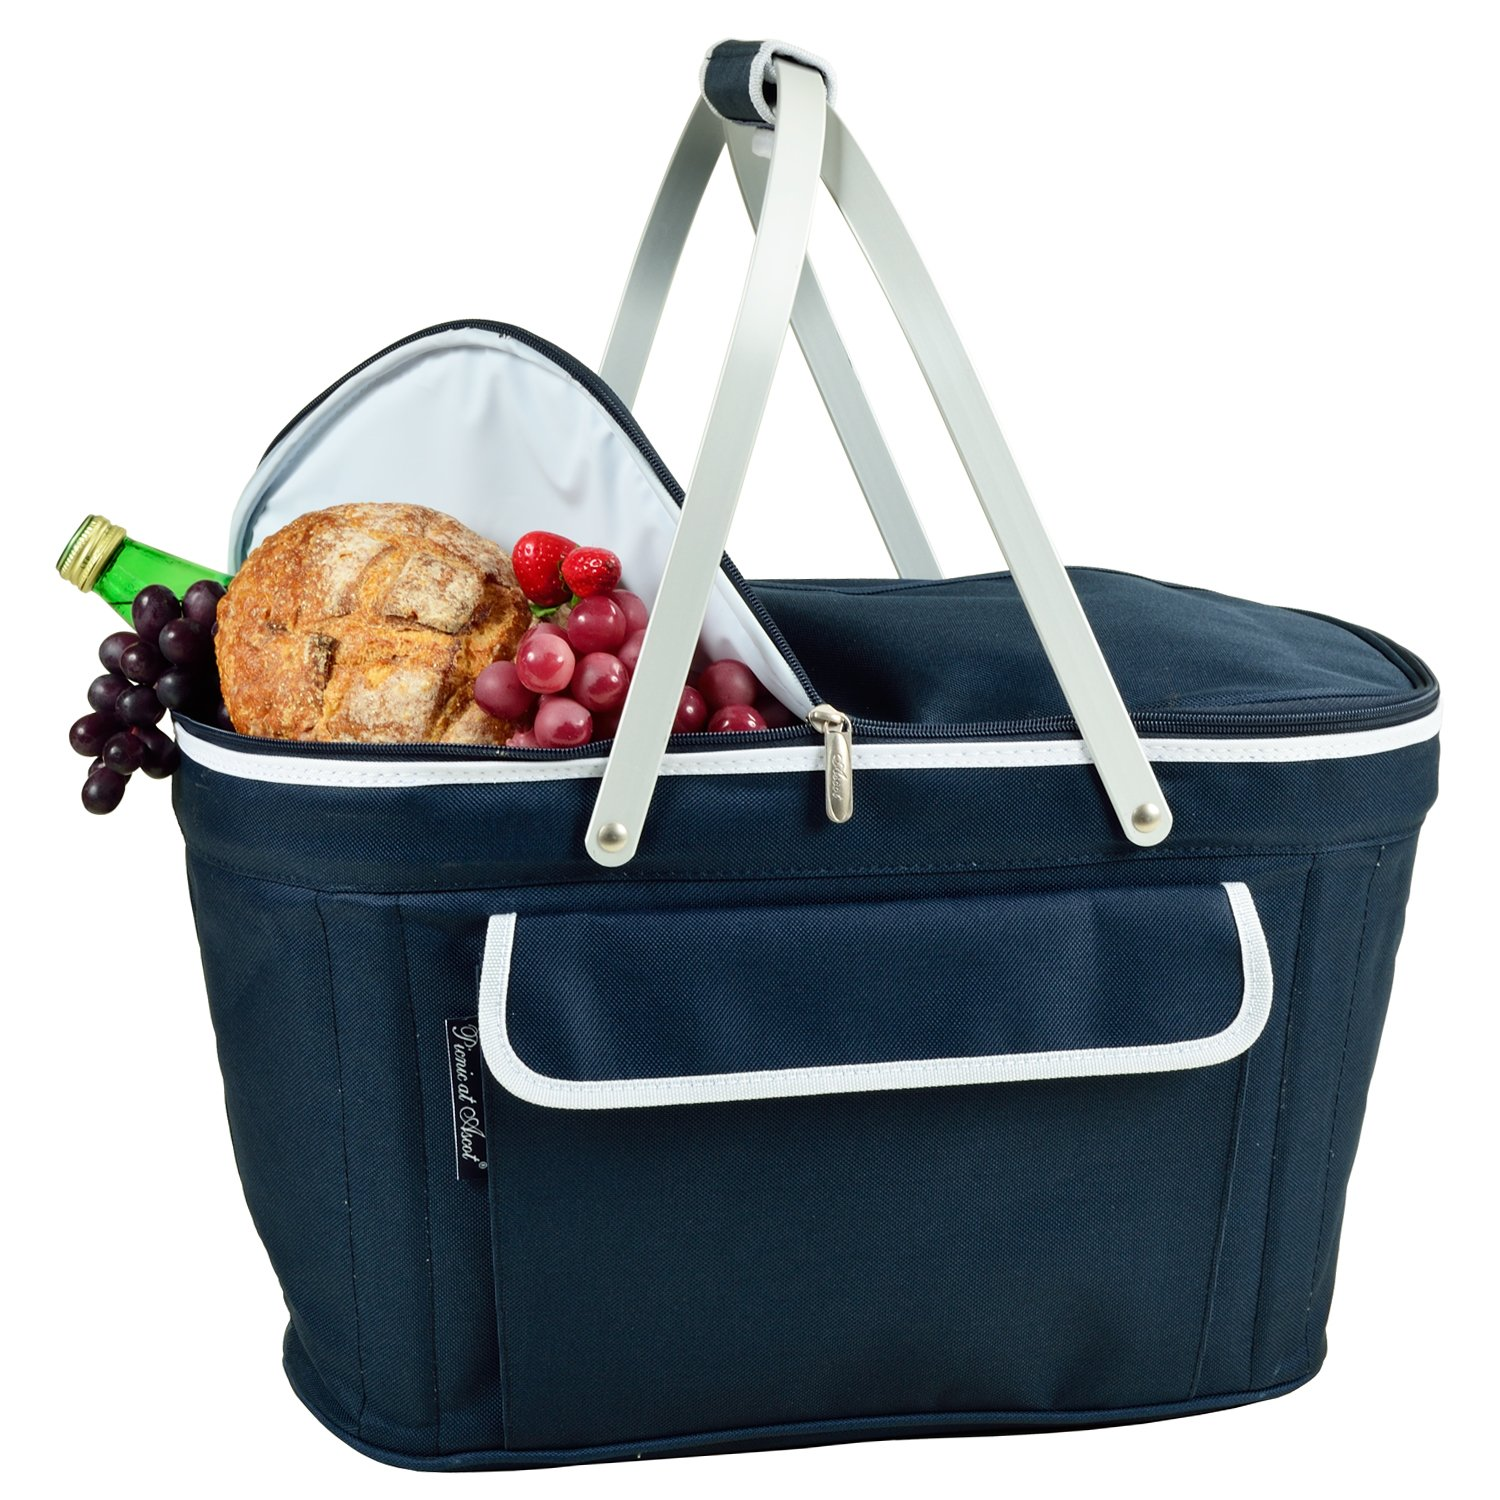 Picnic at Ascot Large Family Size Insulated Folding Collapsible Picnic Basket Cooler with Sewn in Frame - Navy